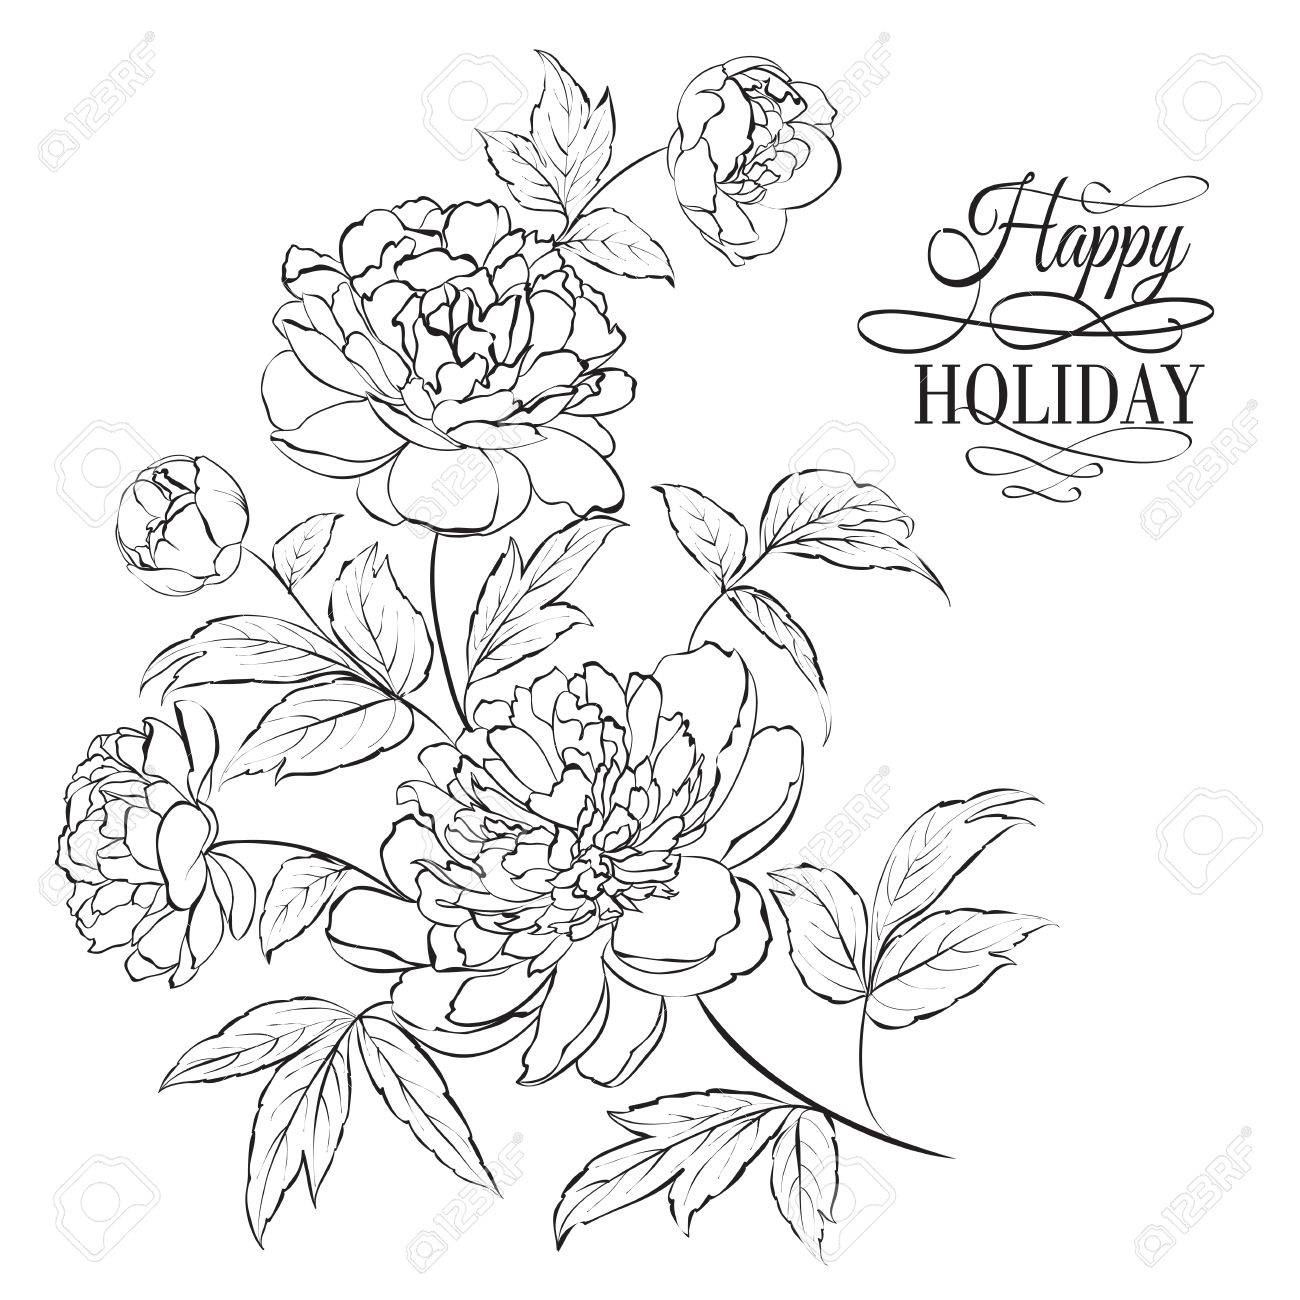 Beautiful hand drawn illustration of peony on a white background Stock Vector - 30478698